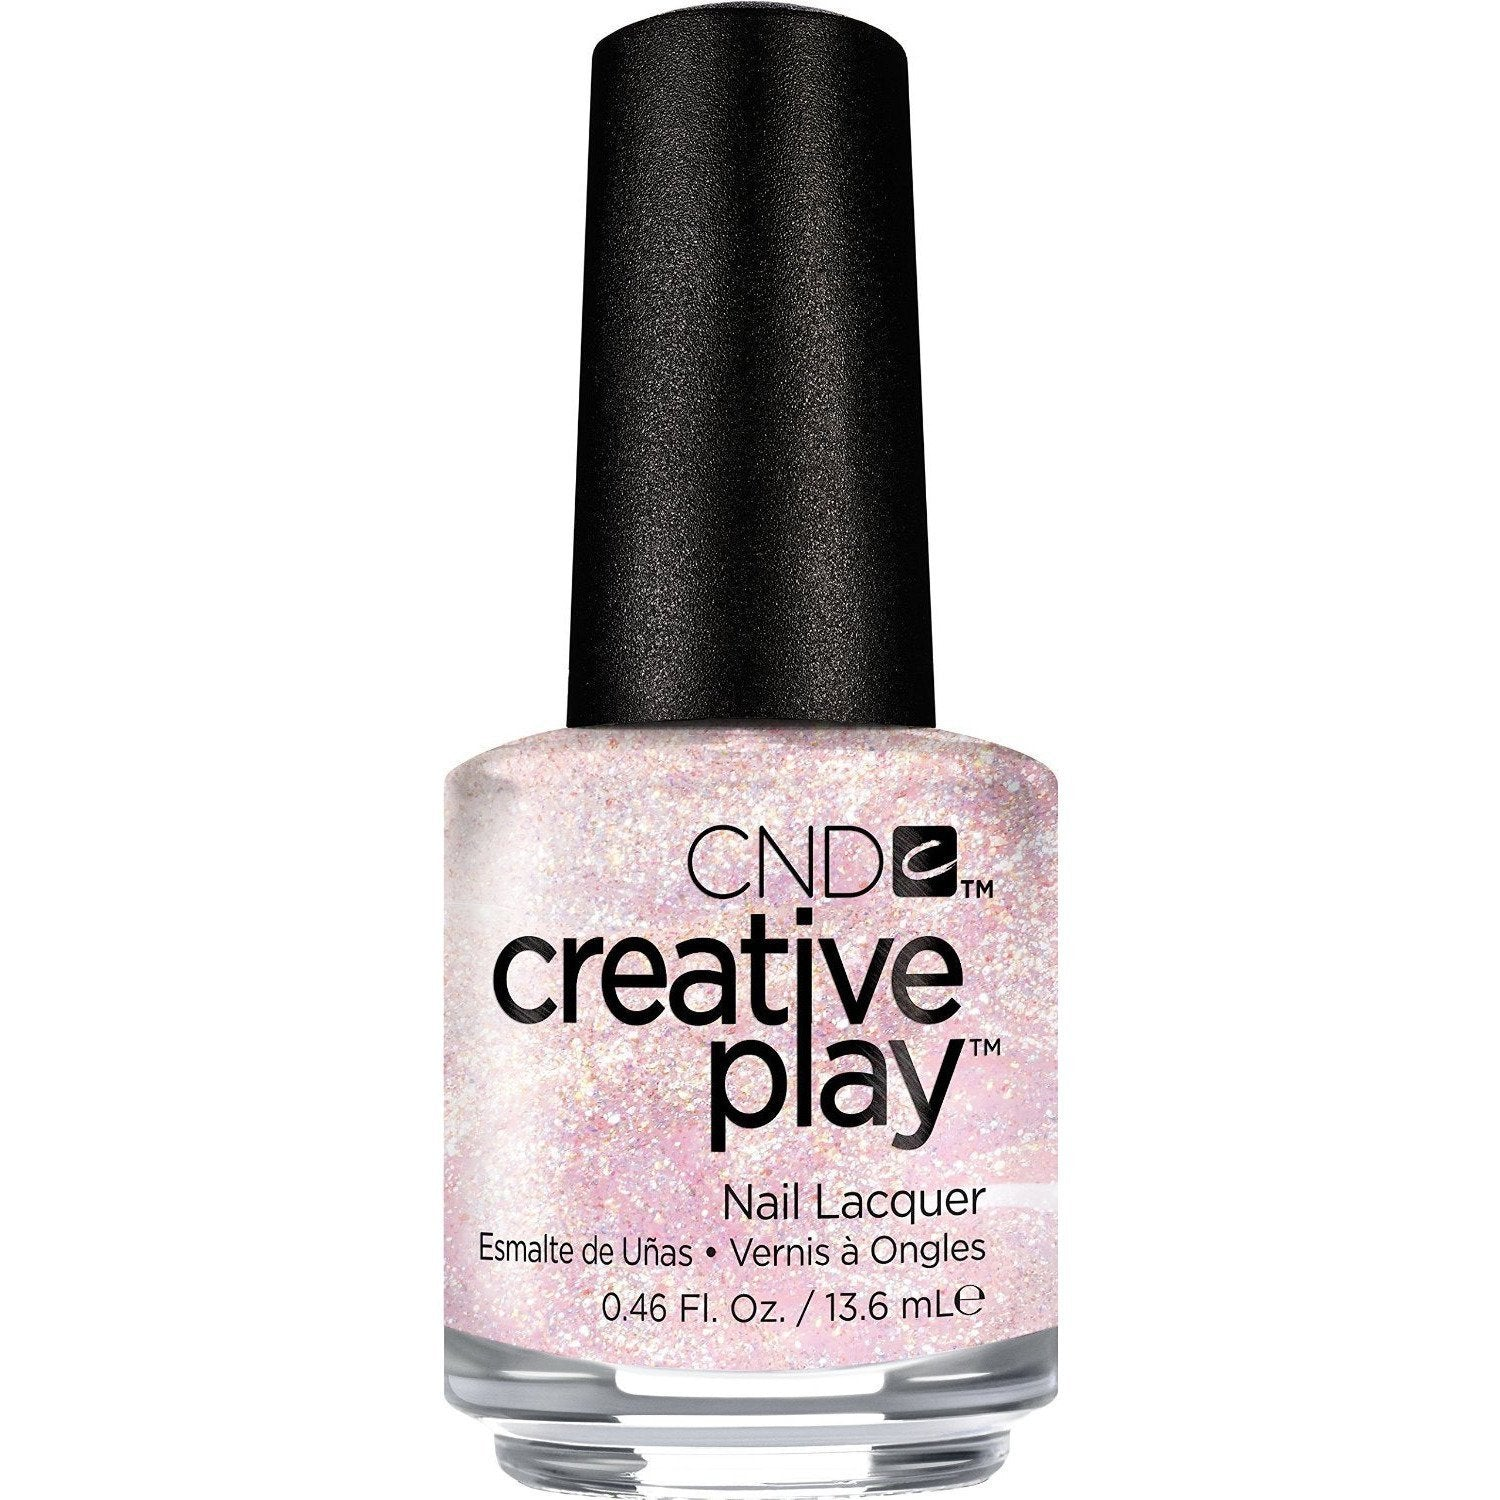 CND Creative Play Nail Polish - Tutu Be or Not To Be | CND - CM Nails & Beauty Supply